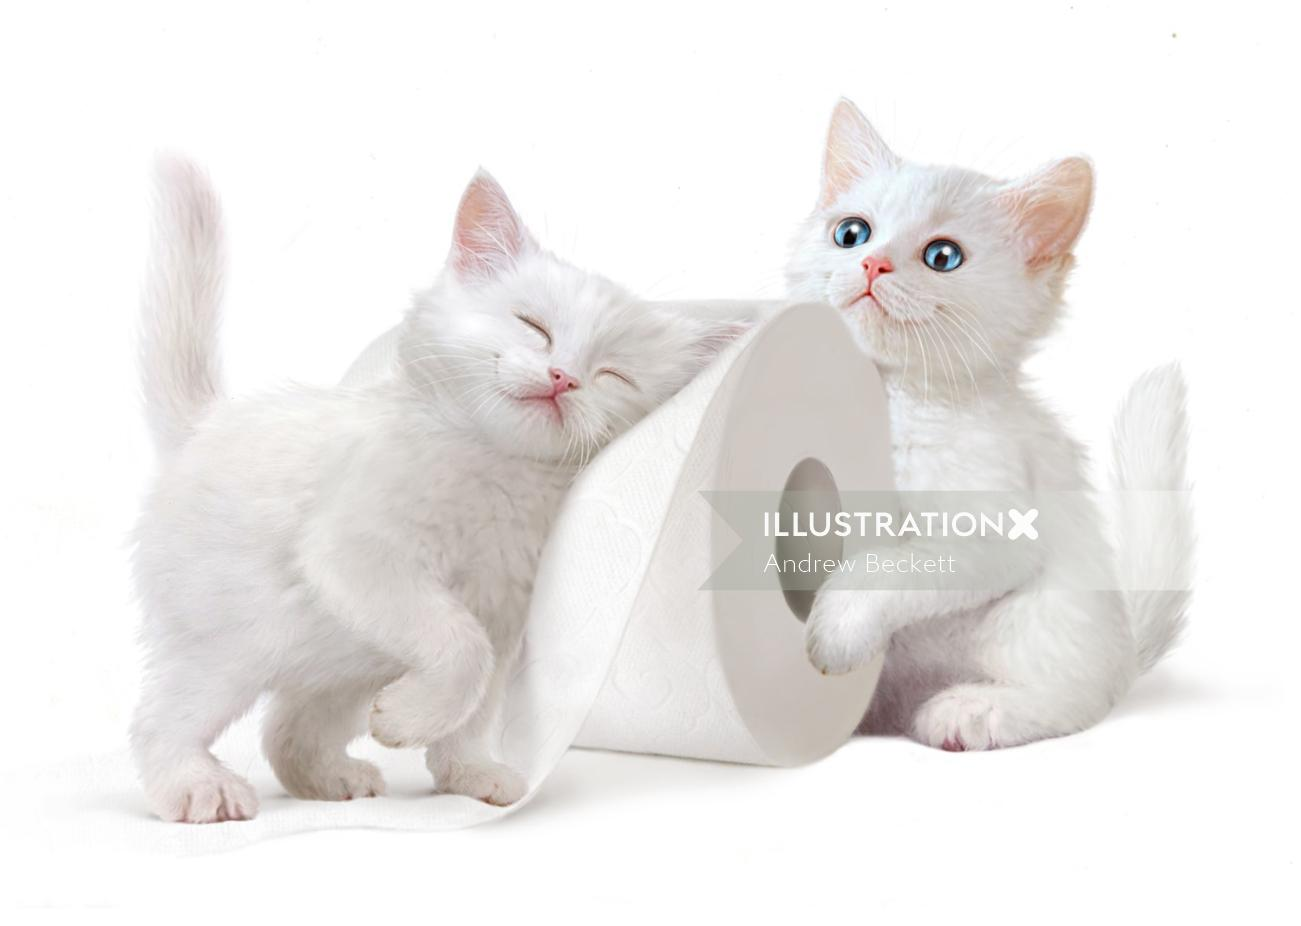 White cats playing - An illustration by Andrew Beckett